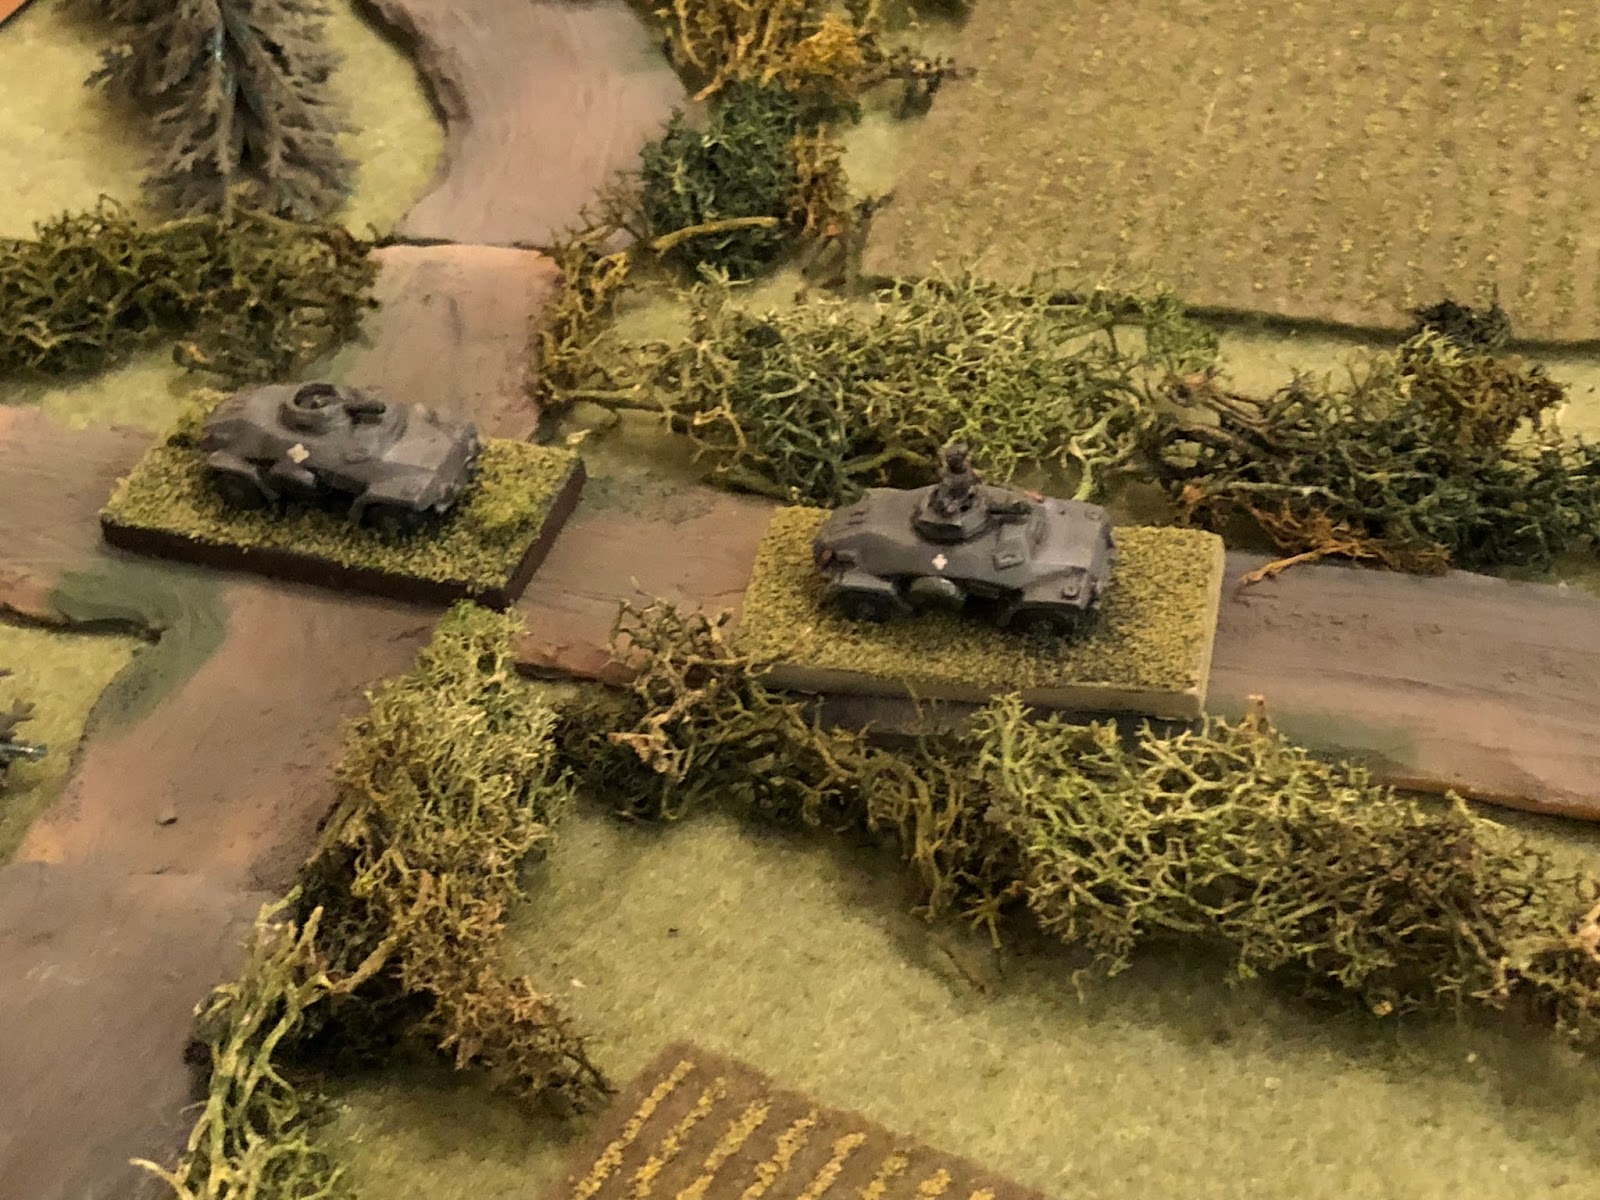 Where it's able to pick out Lt Loeb's platoon of Panzer Mk IIIs moving up